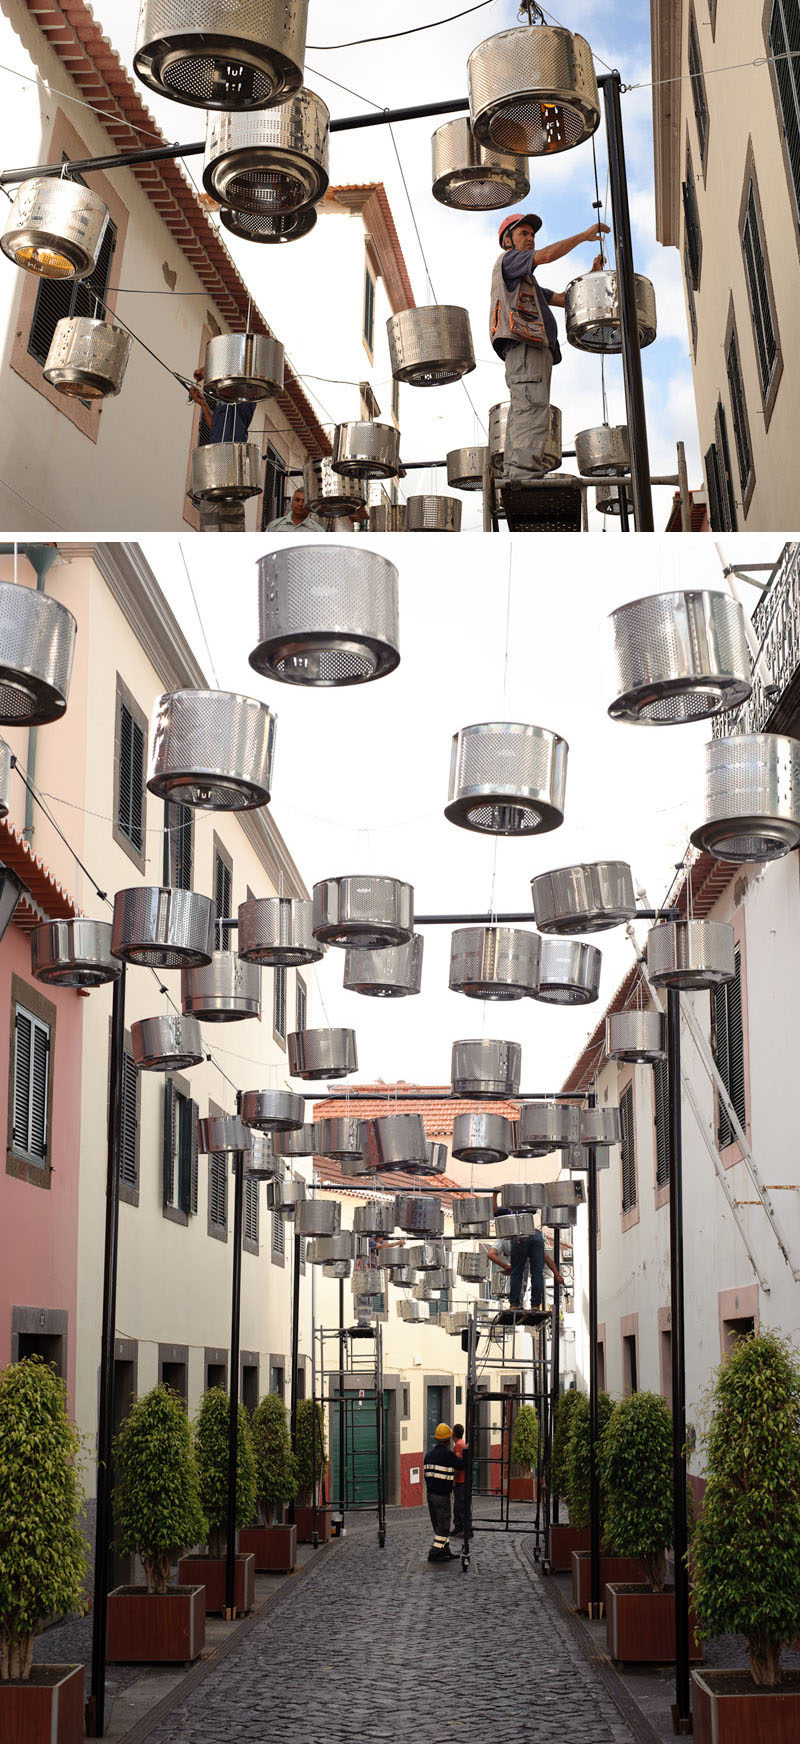 This Light Art Installation Is Made From 133 Old Washing Machine Drums